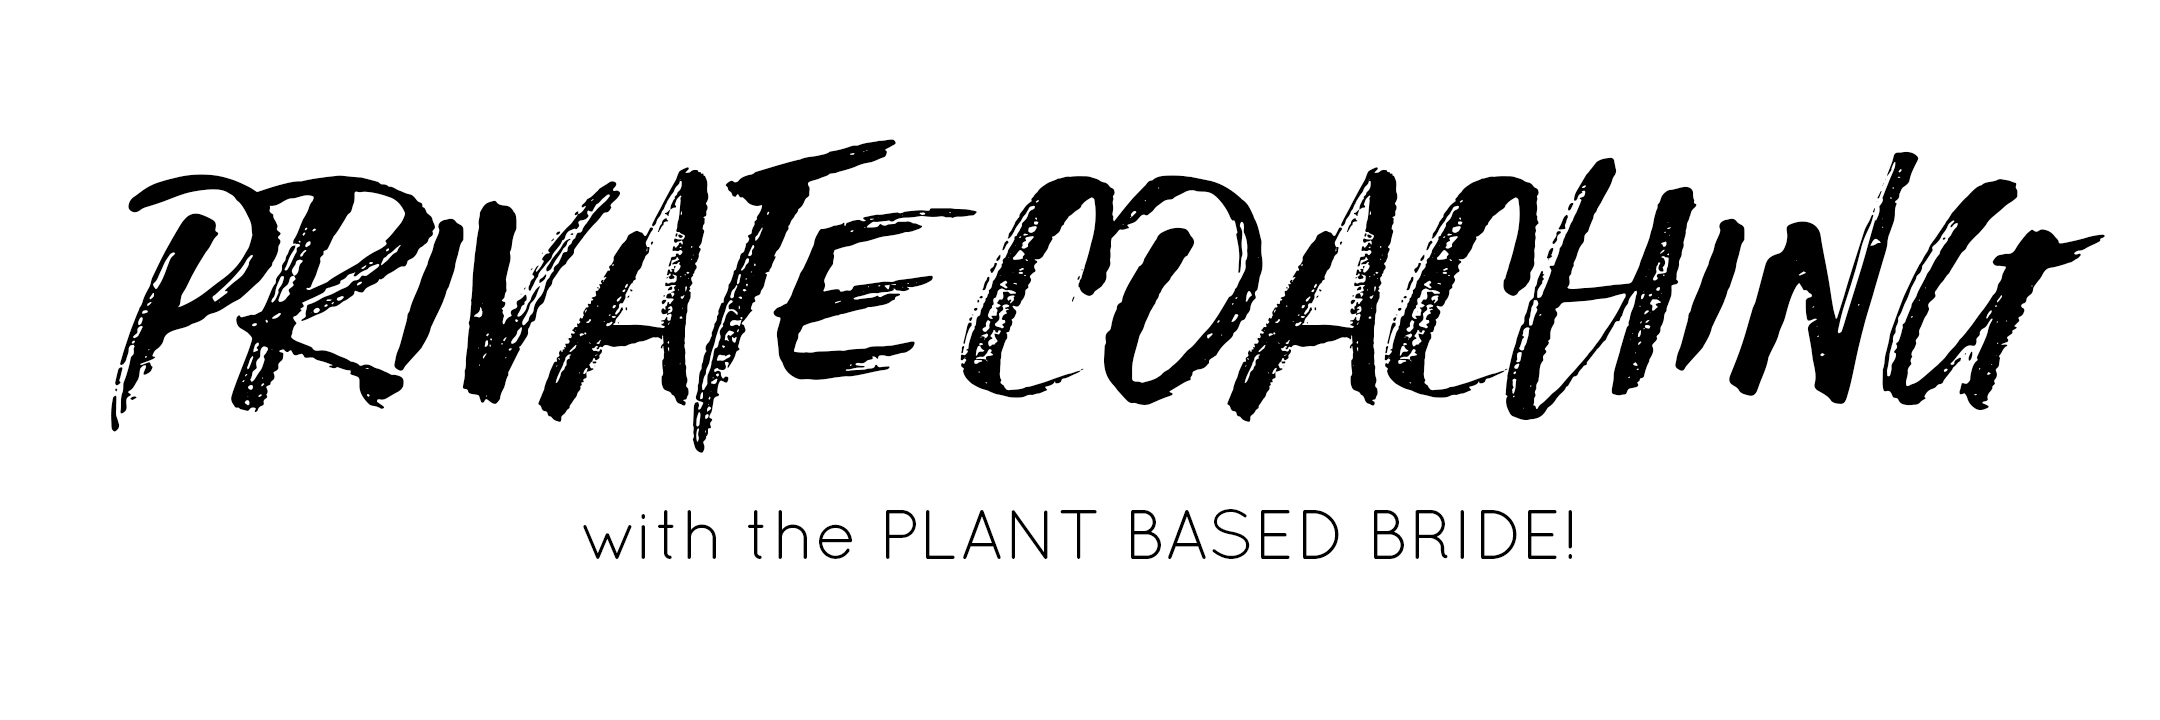 Need help with your plant based journey?  I'm here for you!